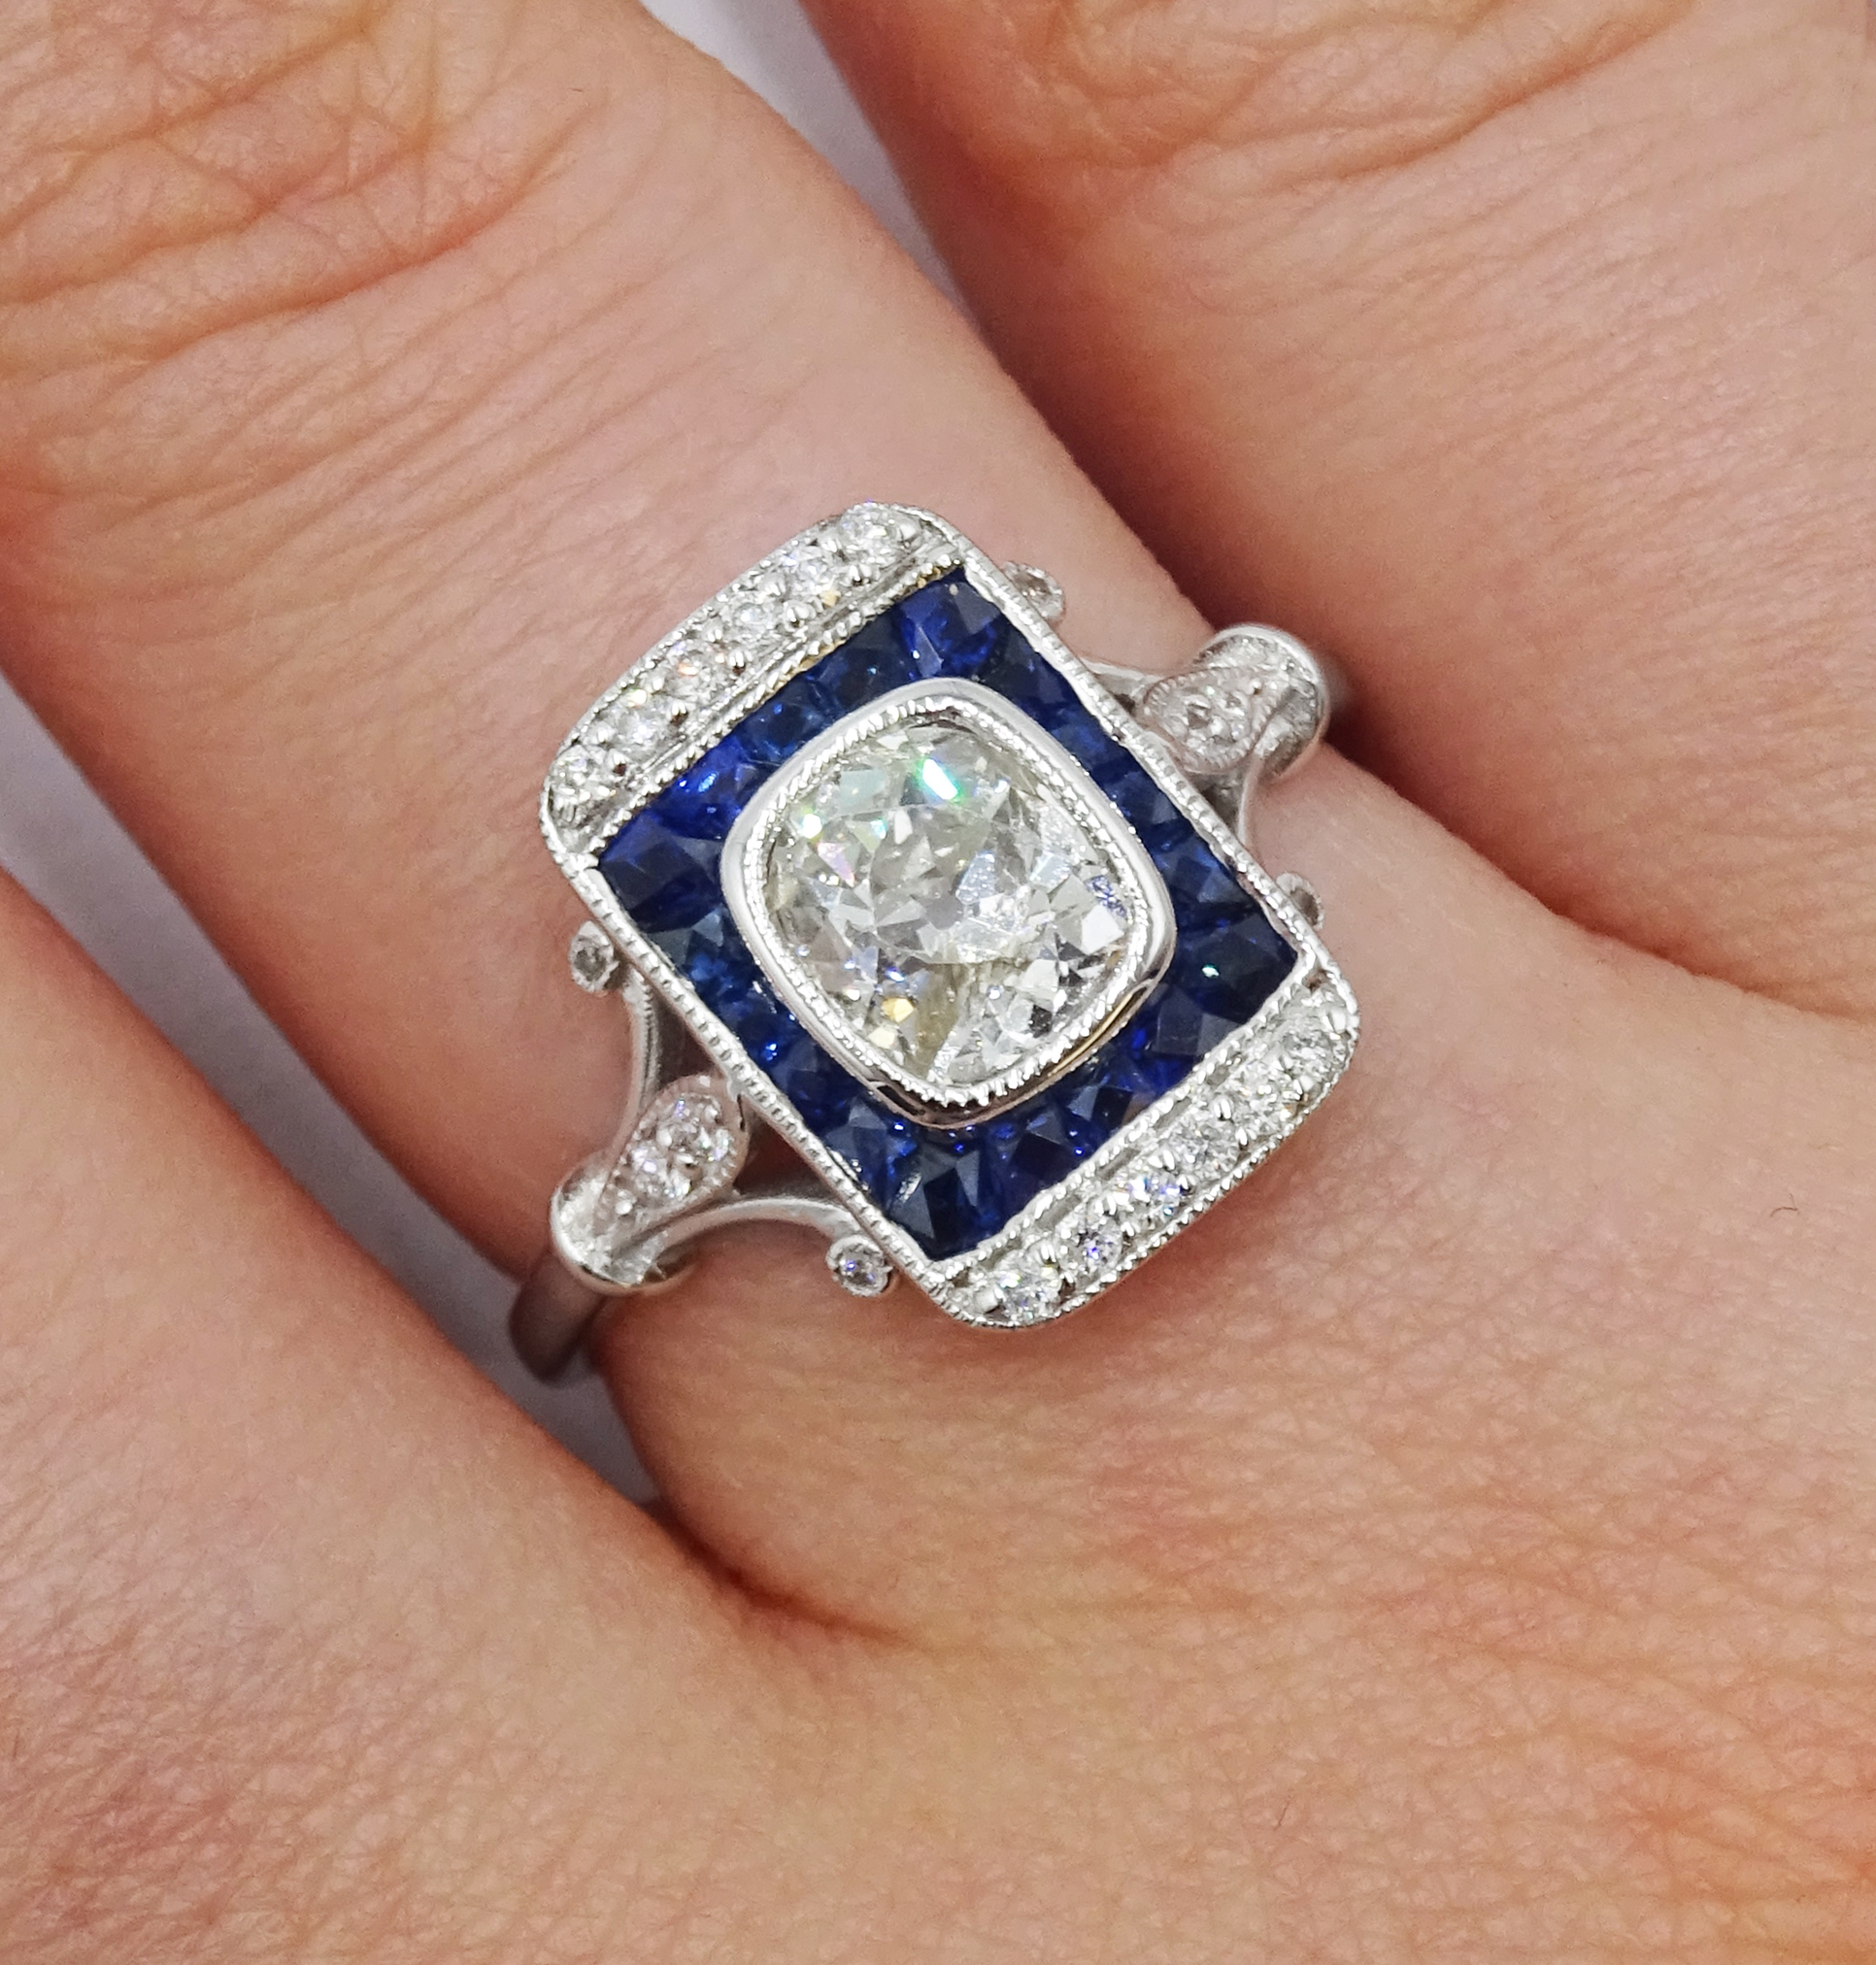 Art Deco style 18ct white gold, sapphire and diamond ring, central old cut diamond surrounded by - Image 2 of 6